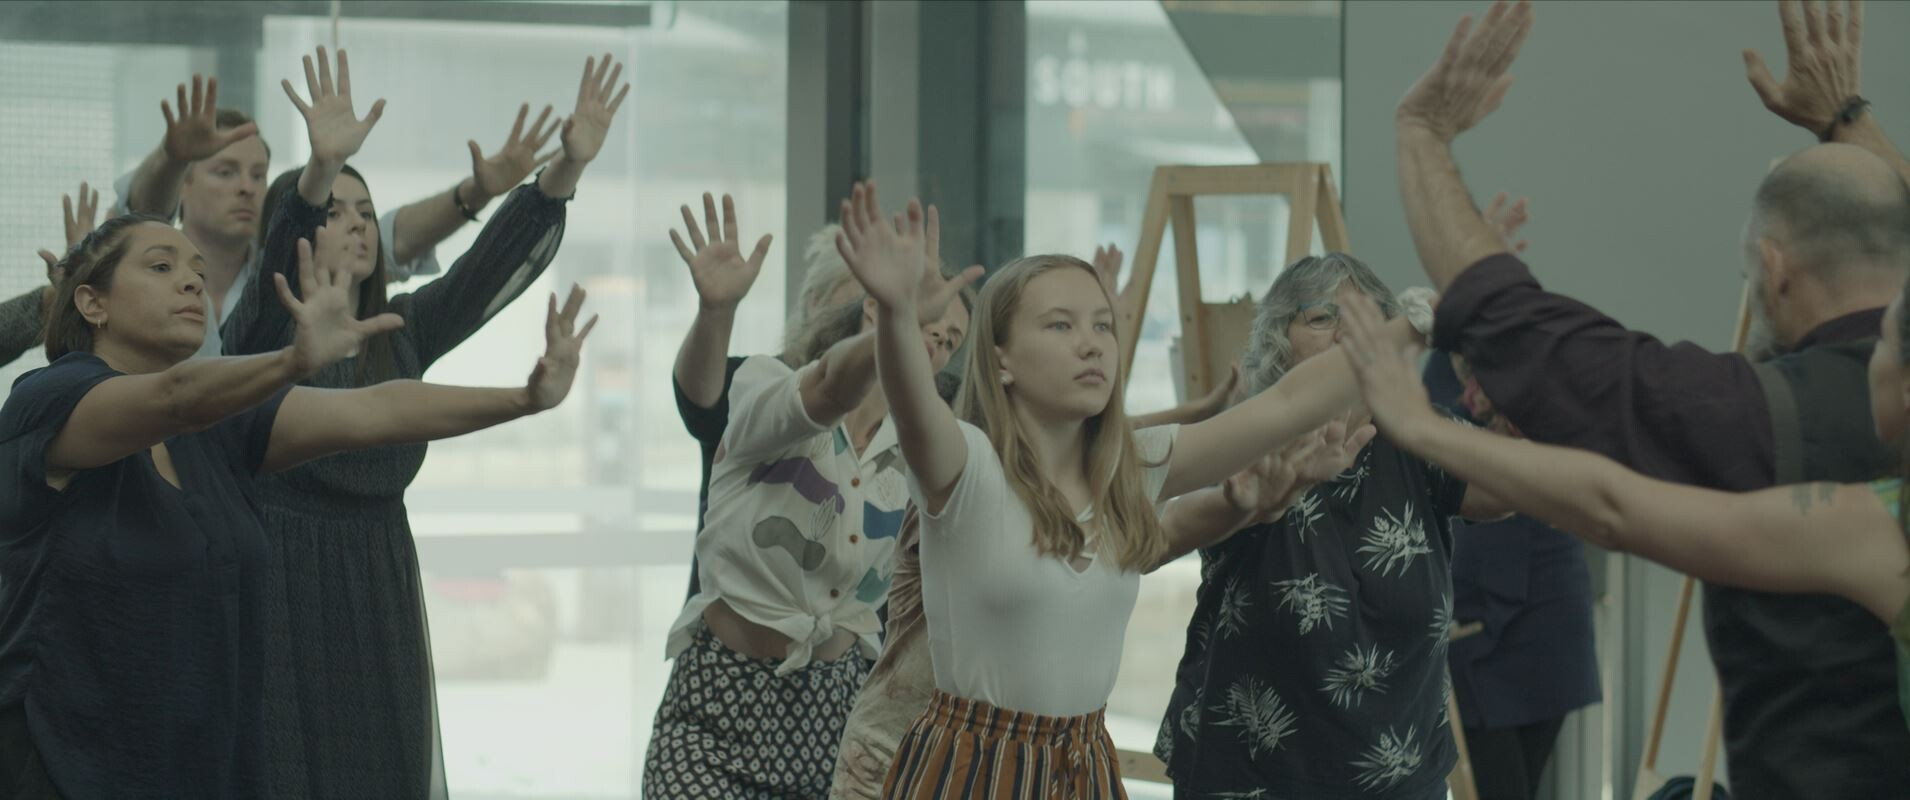 Participants with arms outstretched